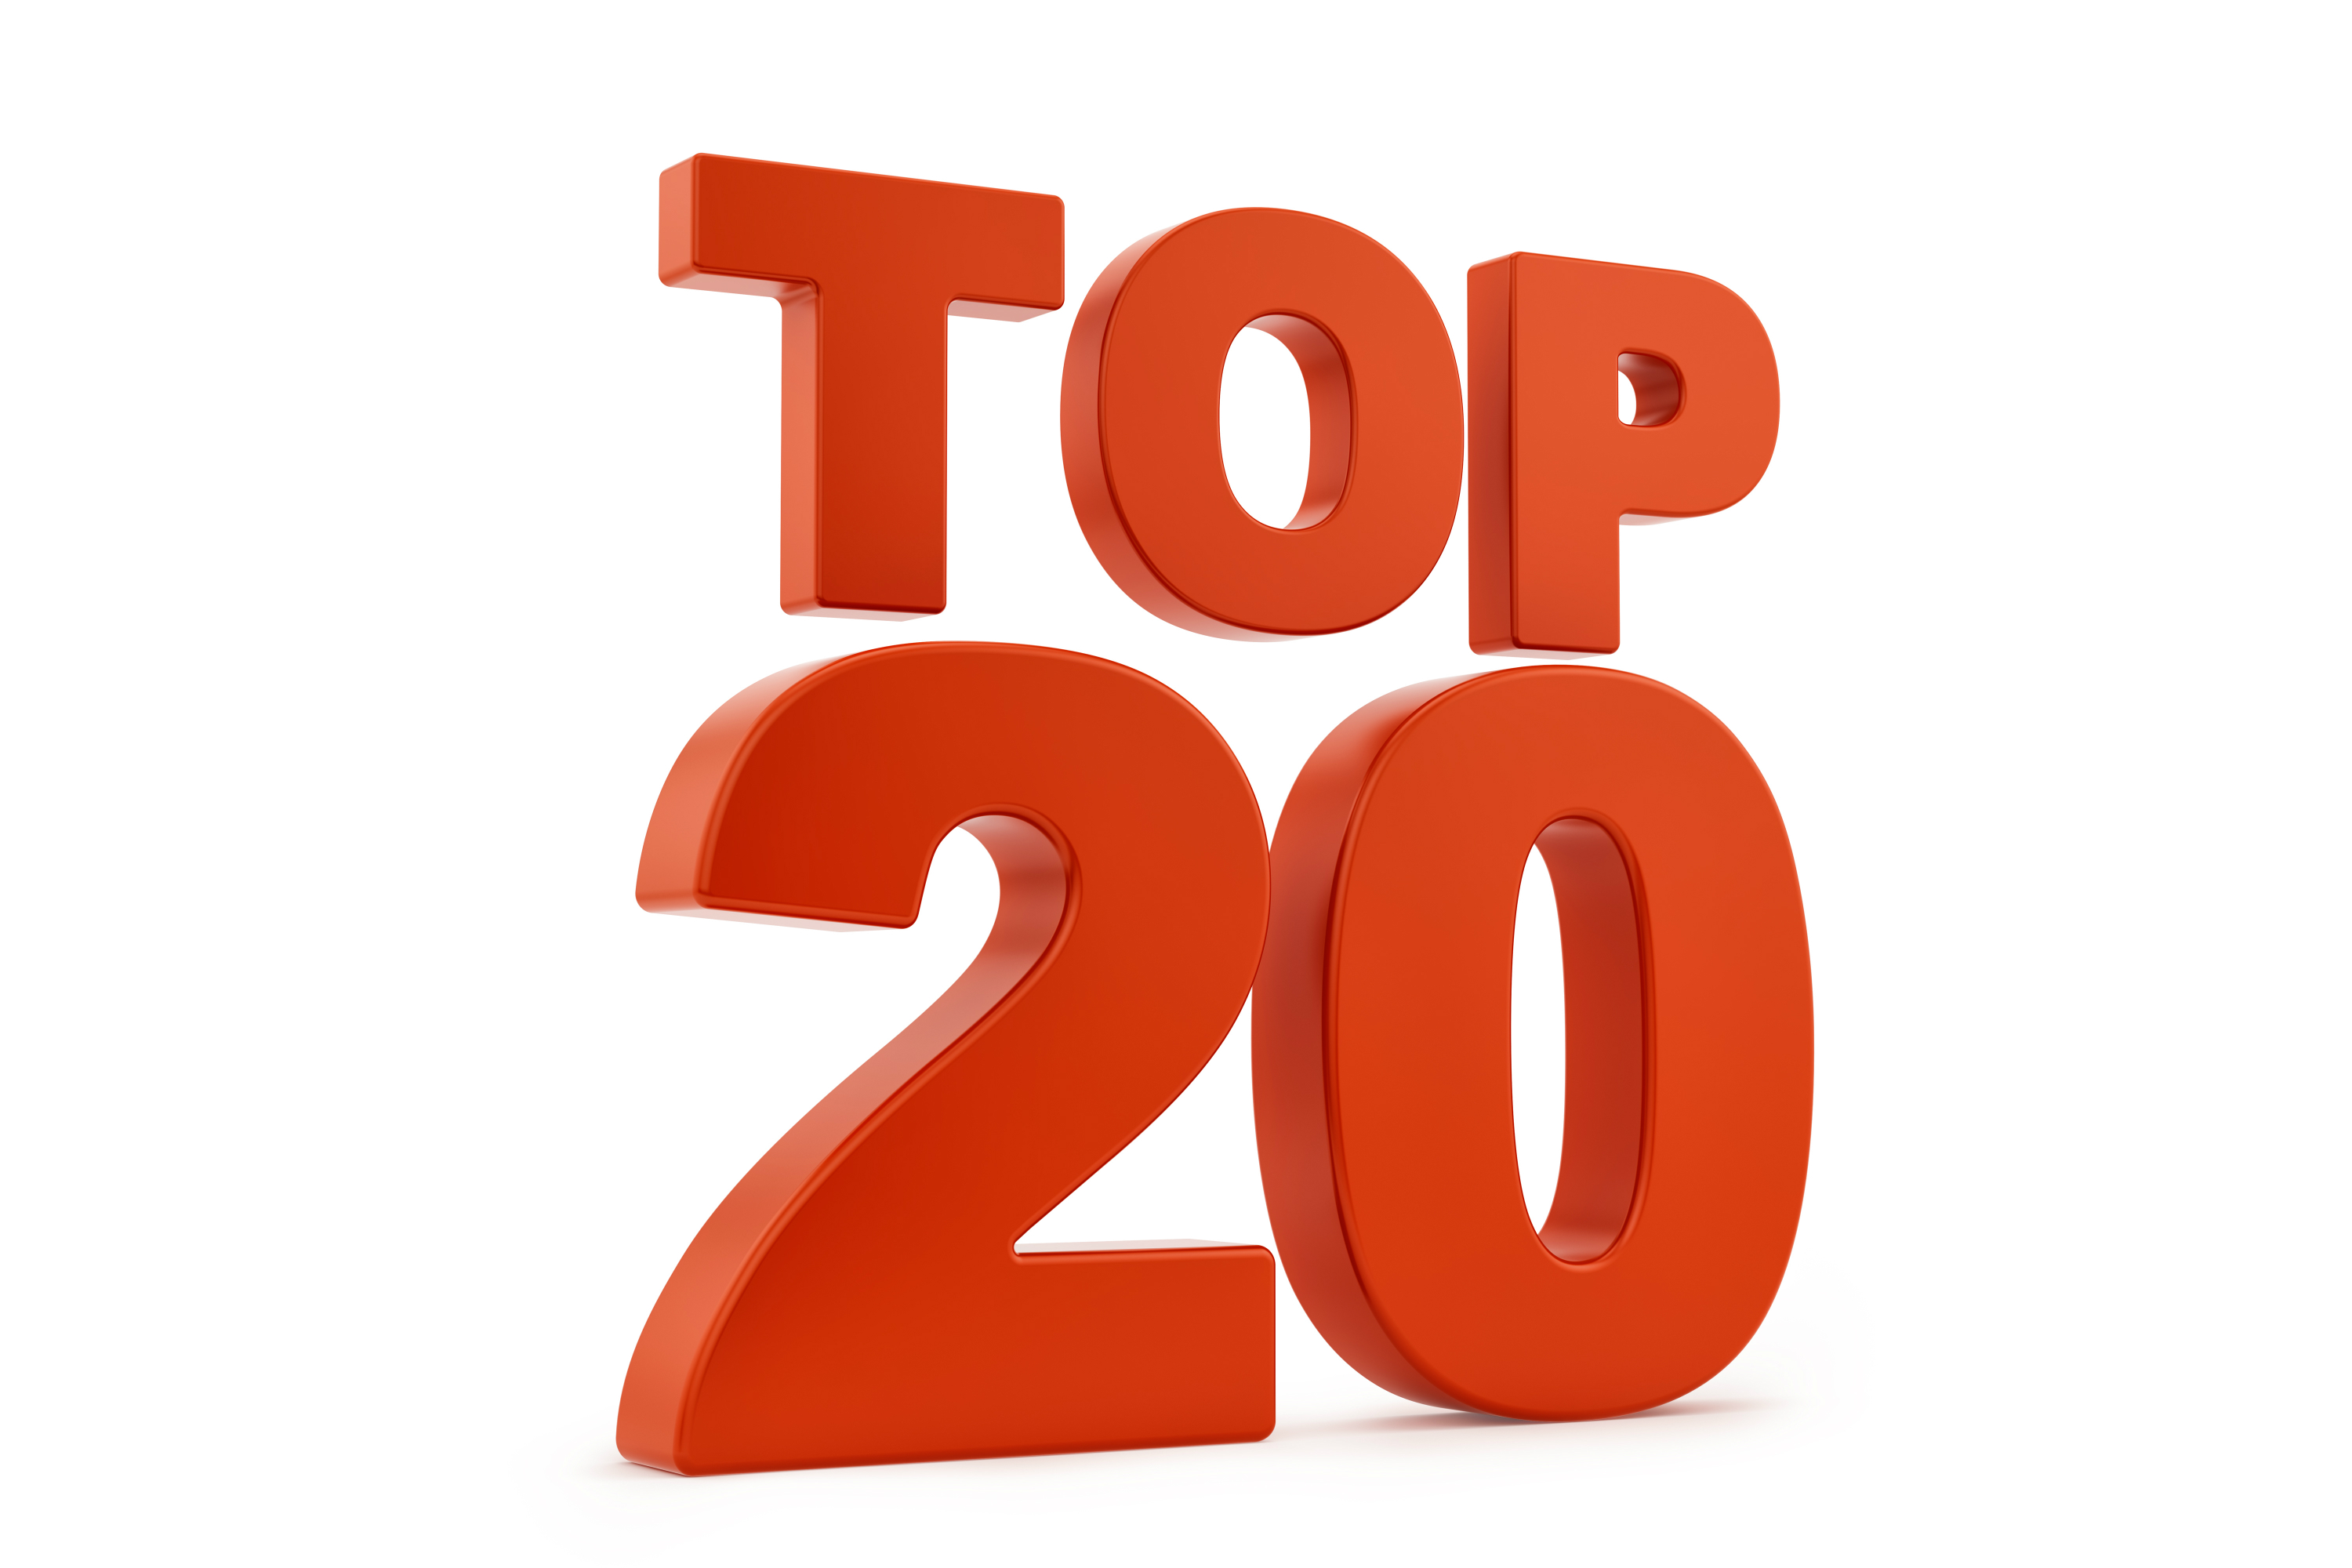 Top 20 graphic